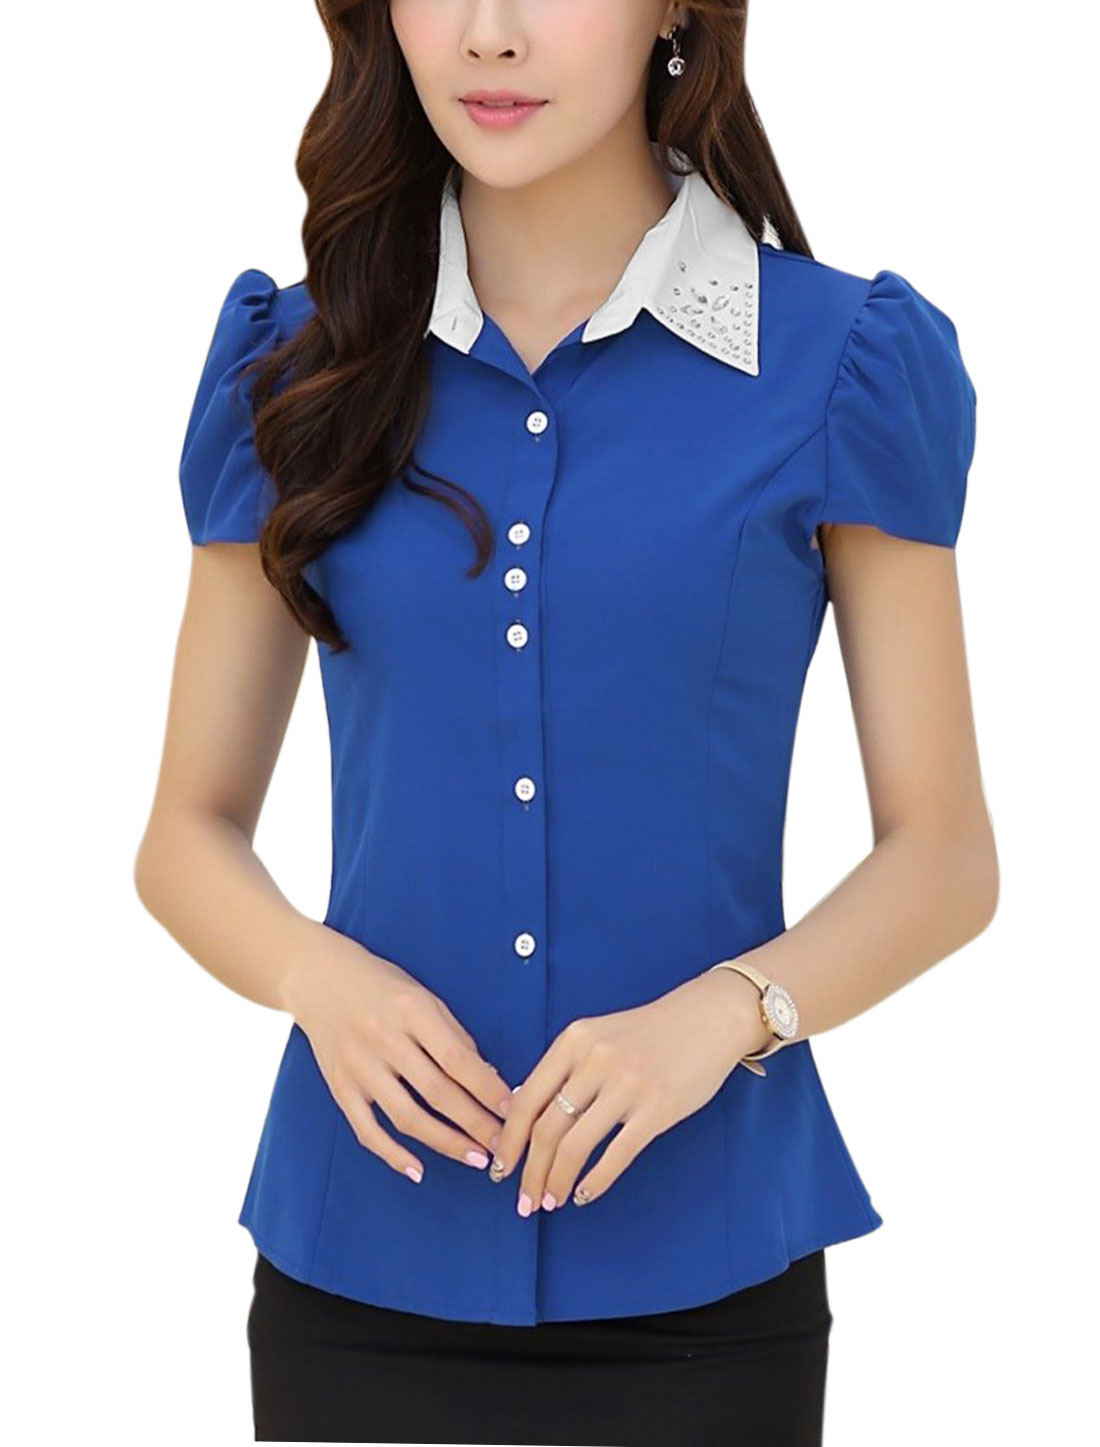 Lady Elegant Puff Sleeve Plastic Crystal Decor Shirt Royal Blue M